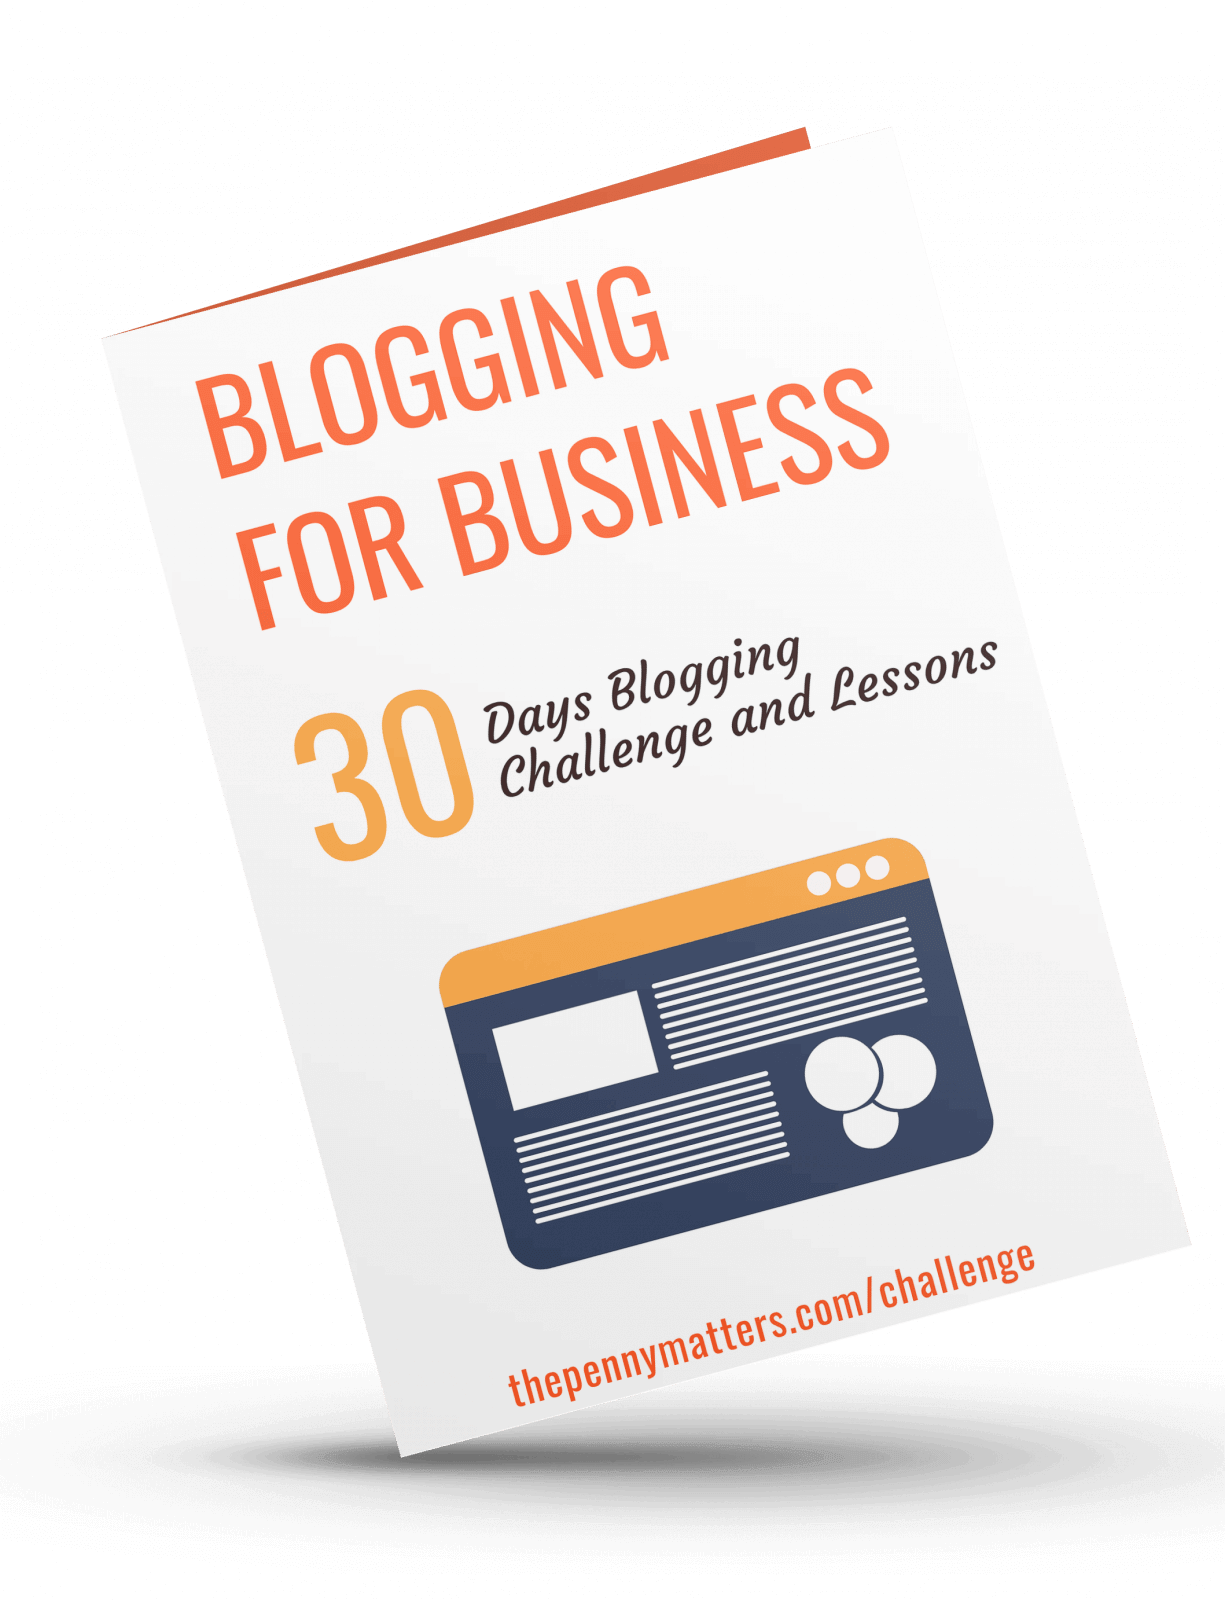 30 days blogging challenge blogging for business